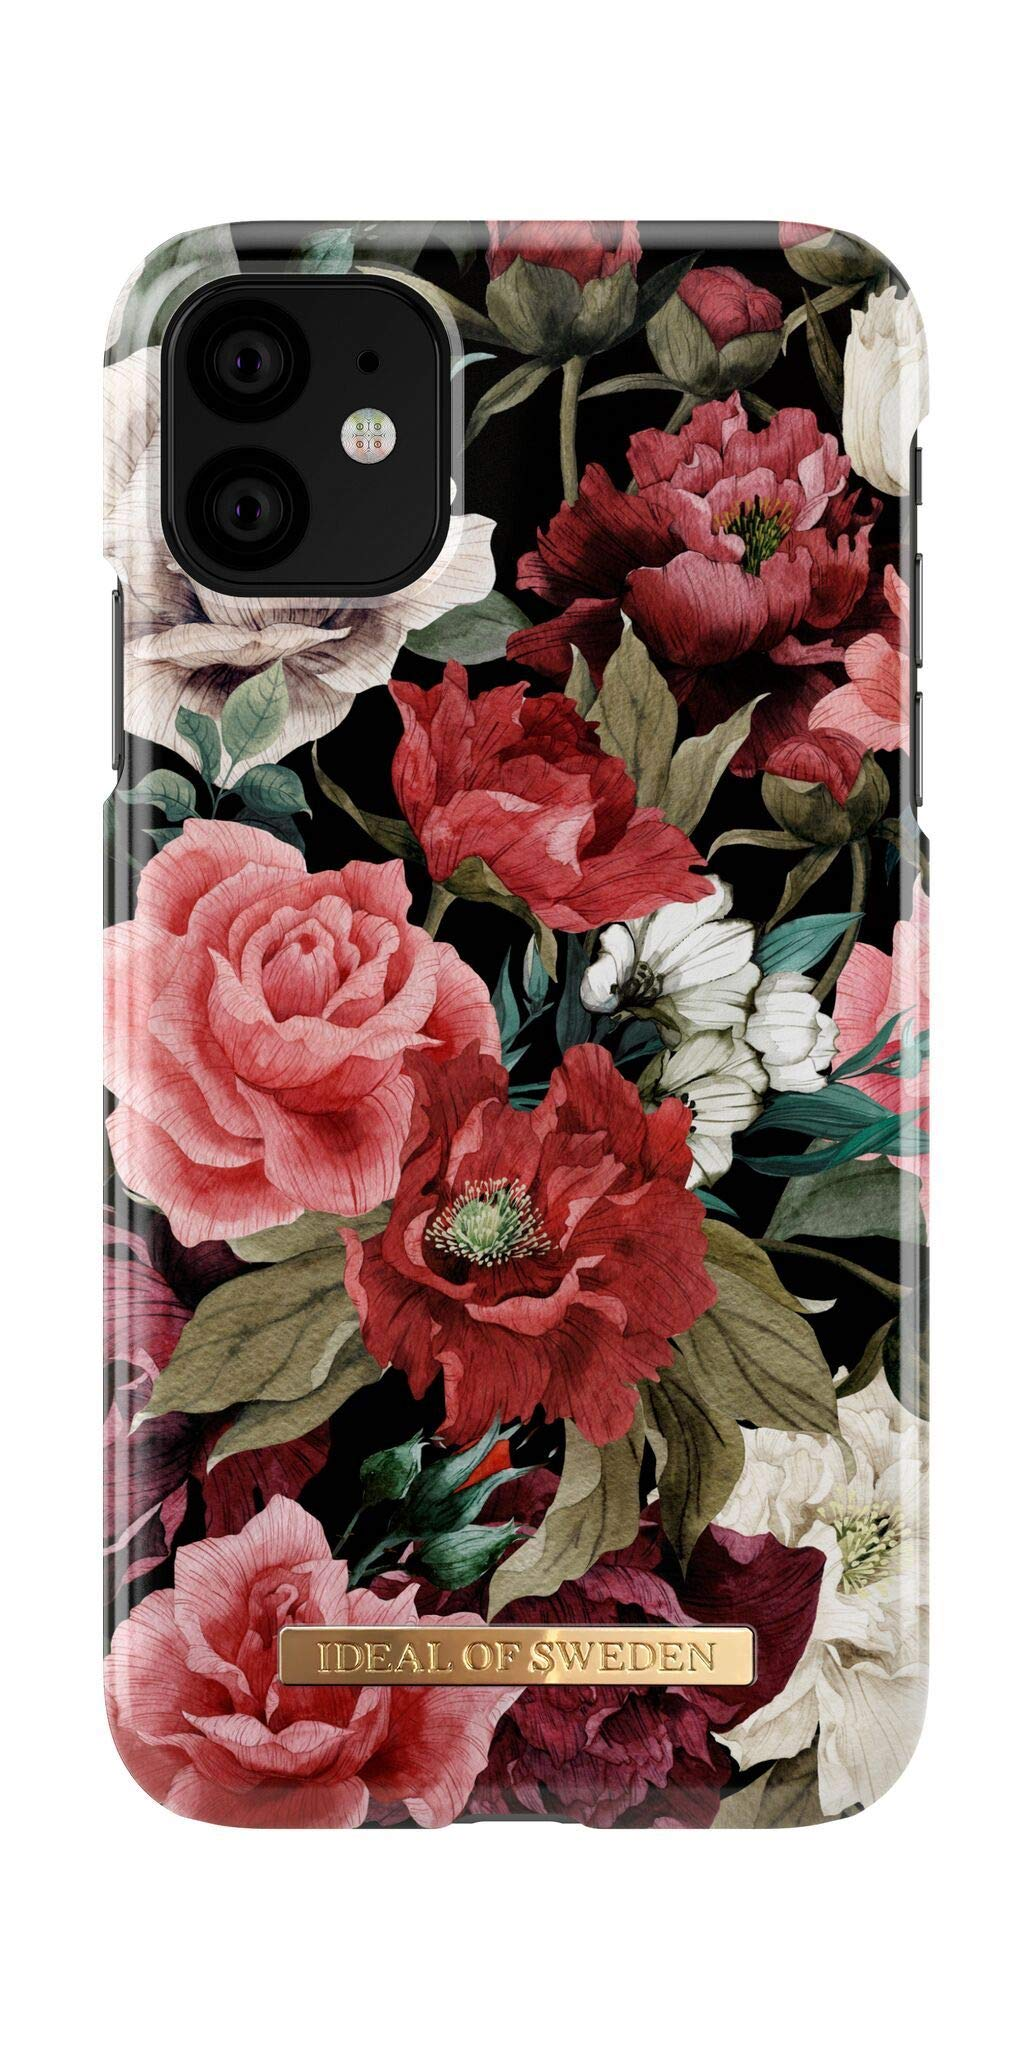 iDeal Of Sweden Mobile Phone Case for iPhone 11 (Microfiber Lining, Qi Wireless Charger Compatible) (Antique Roses)